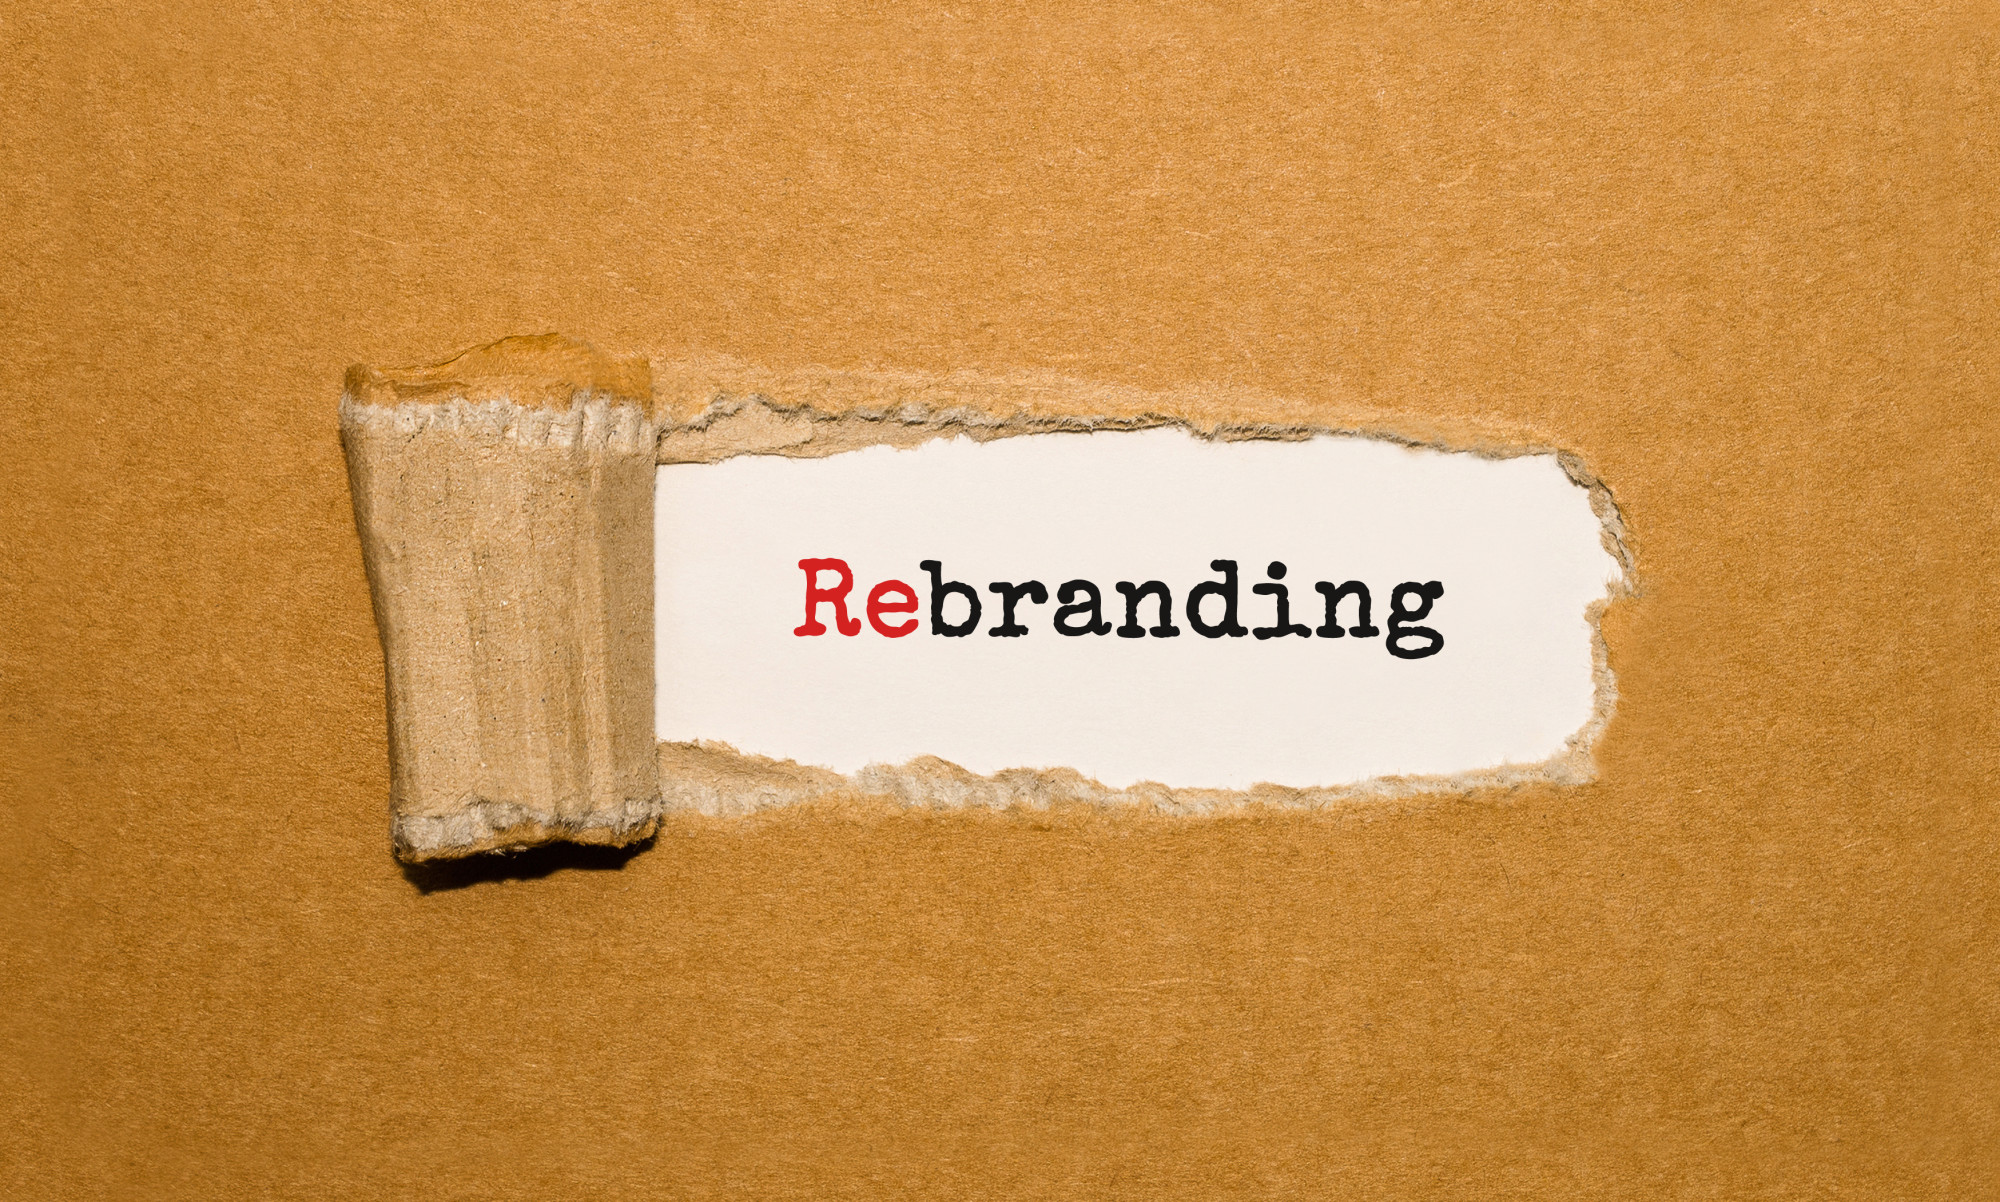 an image of the word rebranding being revealed but note there is a lot to consider before you rebrand